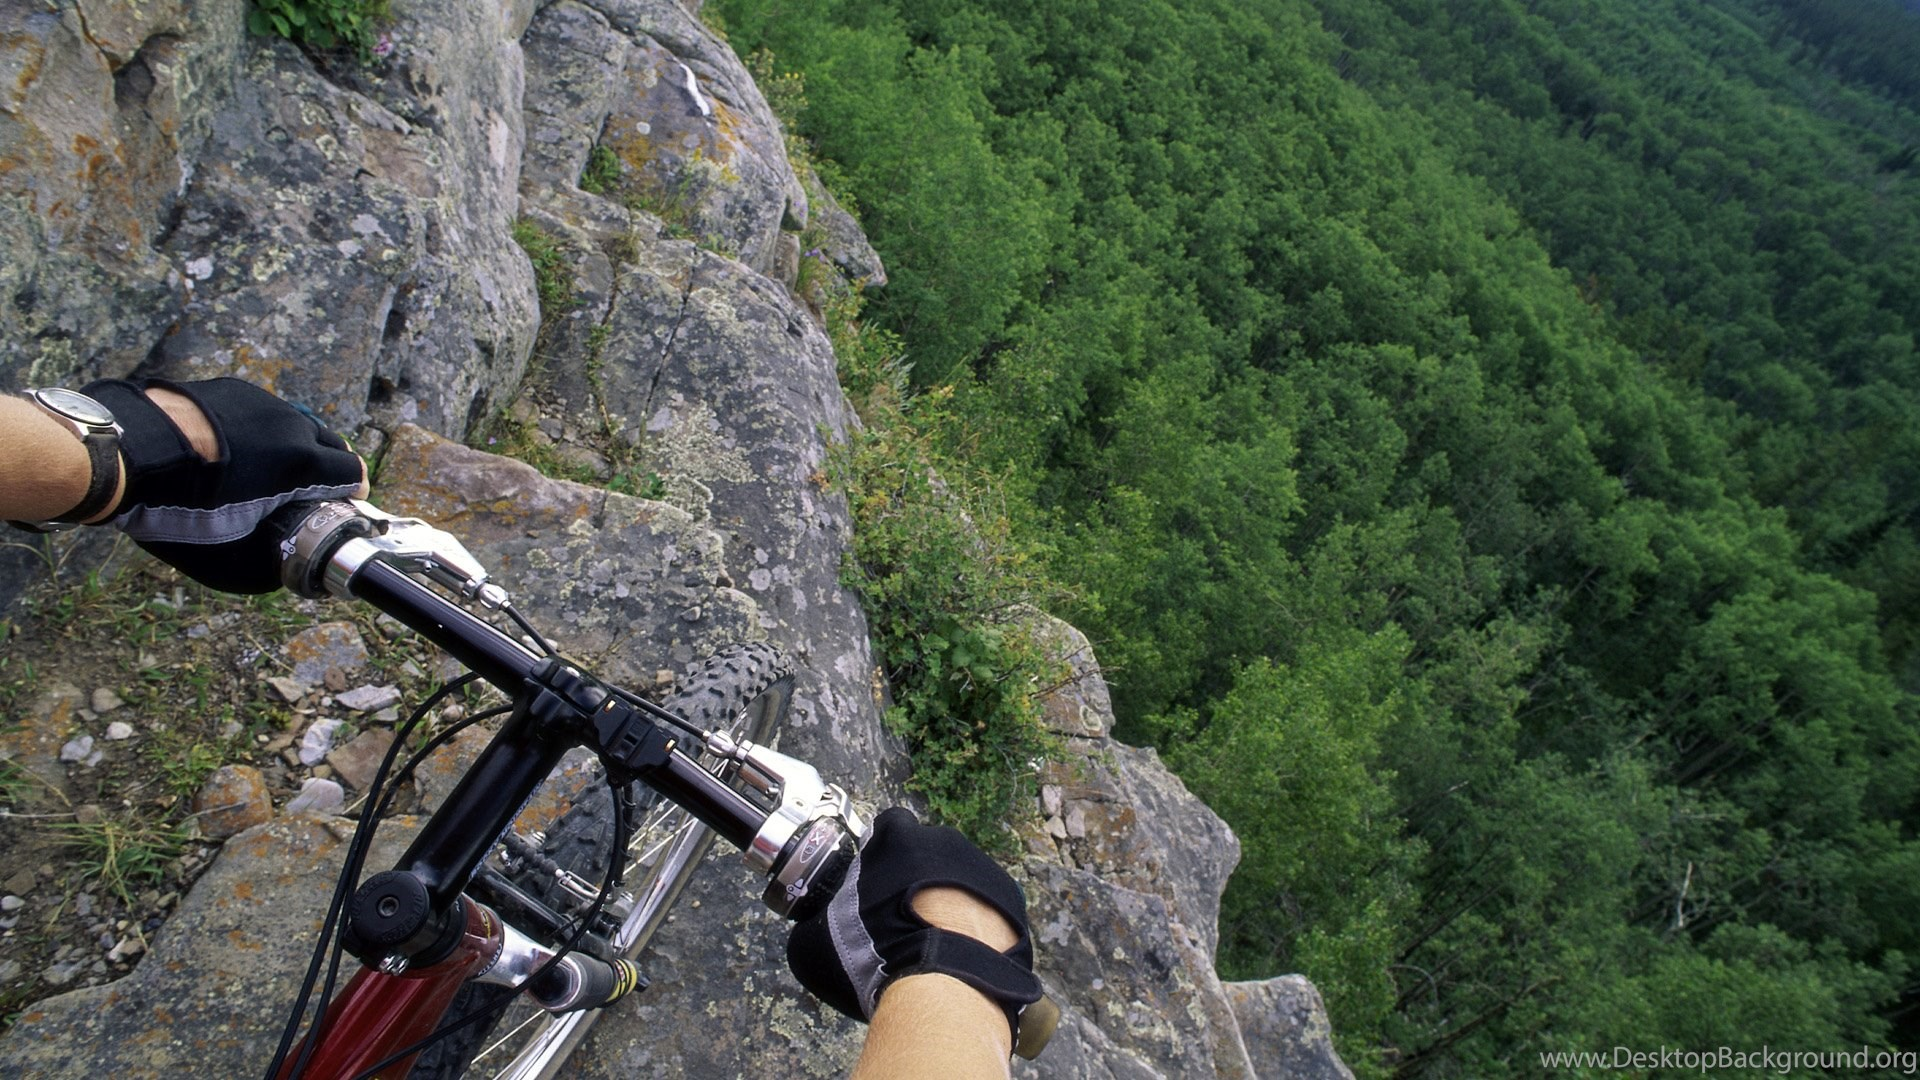 Wallpapers Nature Downhill Mountains Mountain Biking Hd And